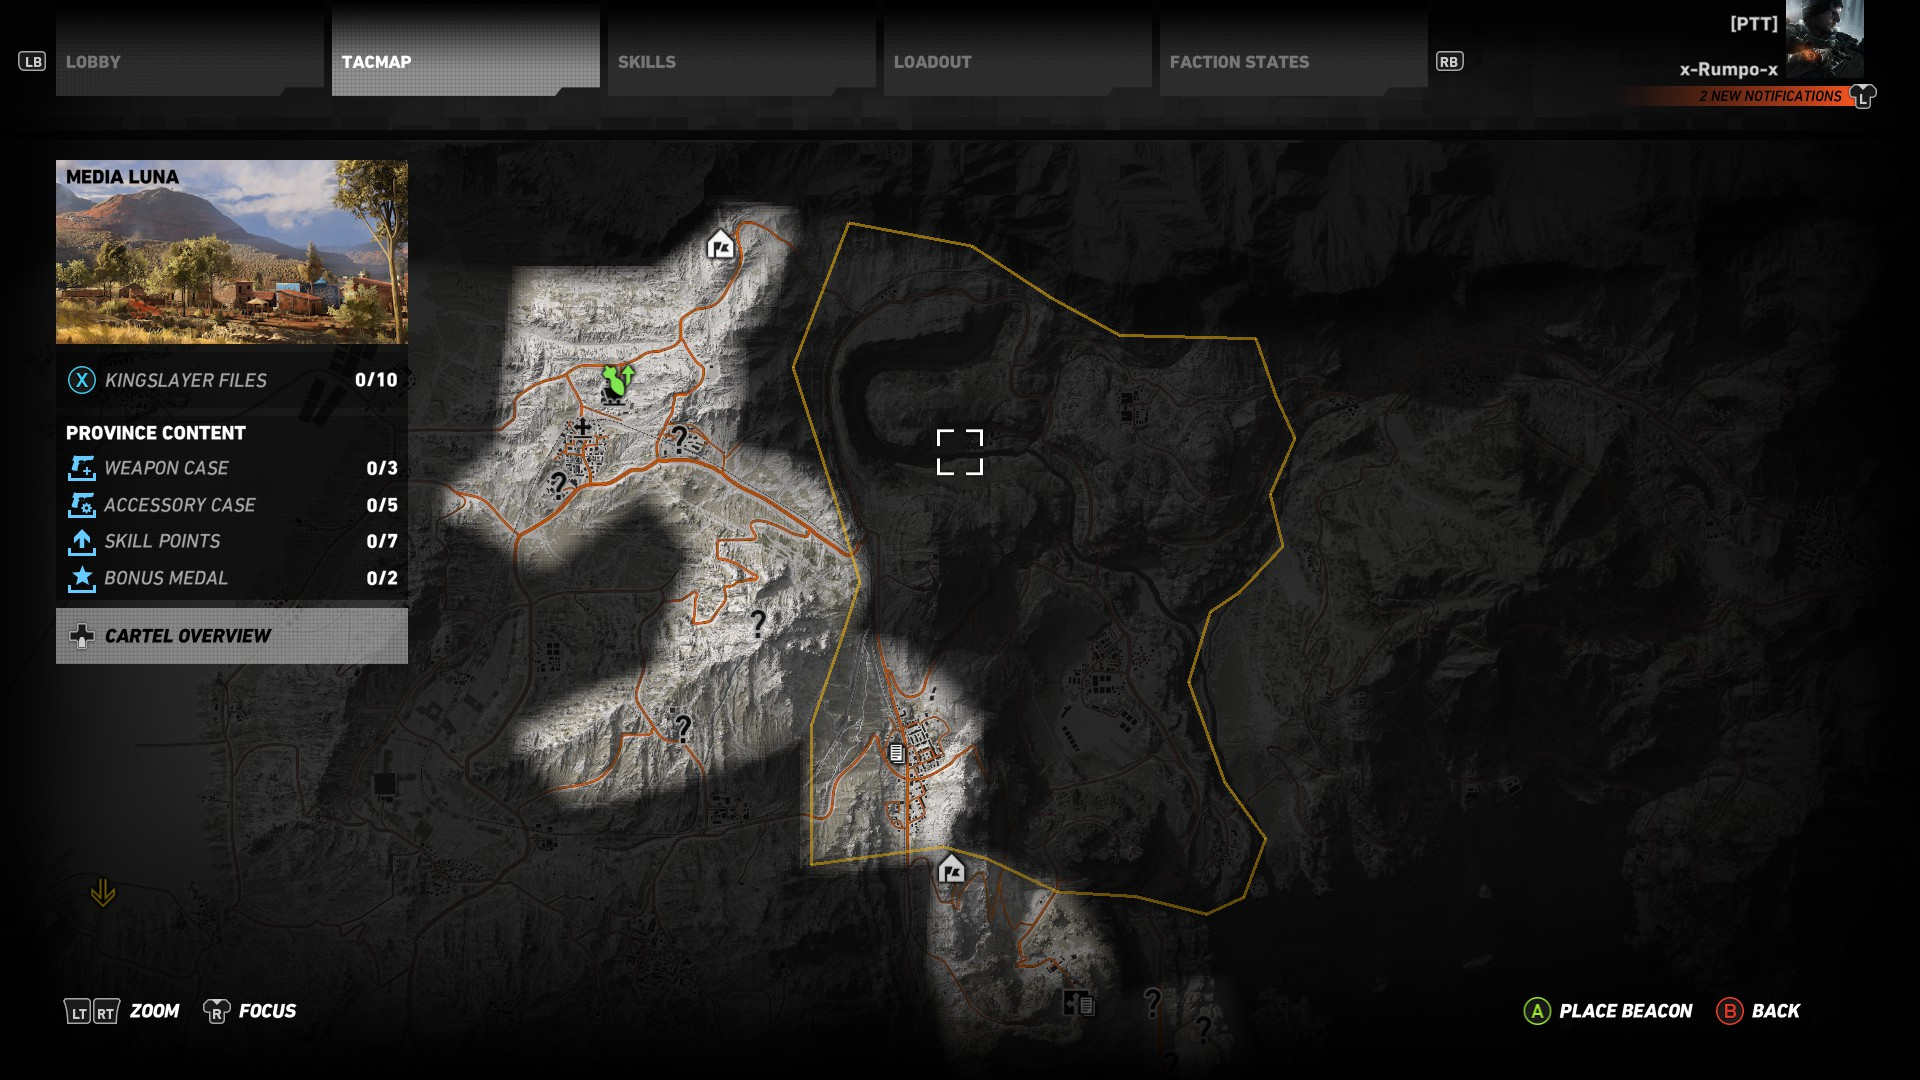 ACR Map location - How to get the ACR Assault Rifle in Ghost Recon Wildlands